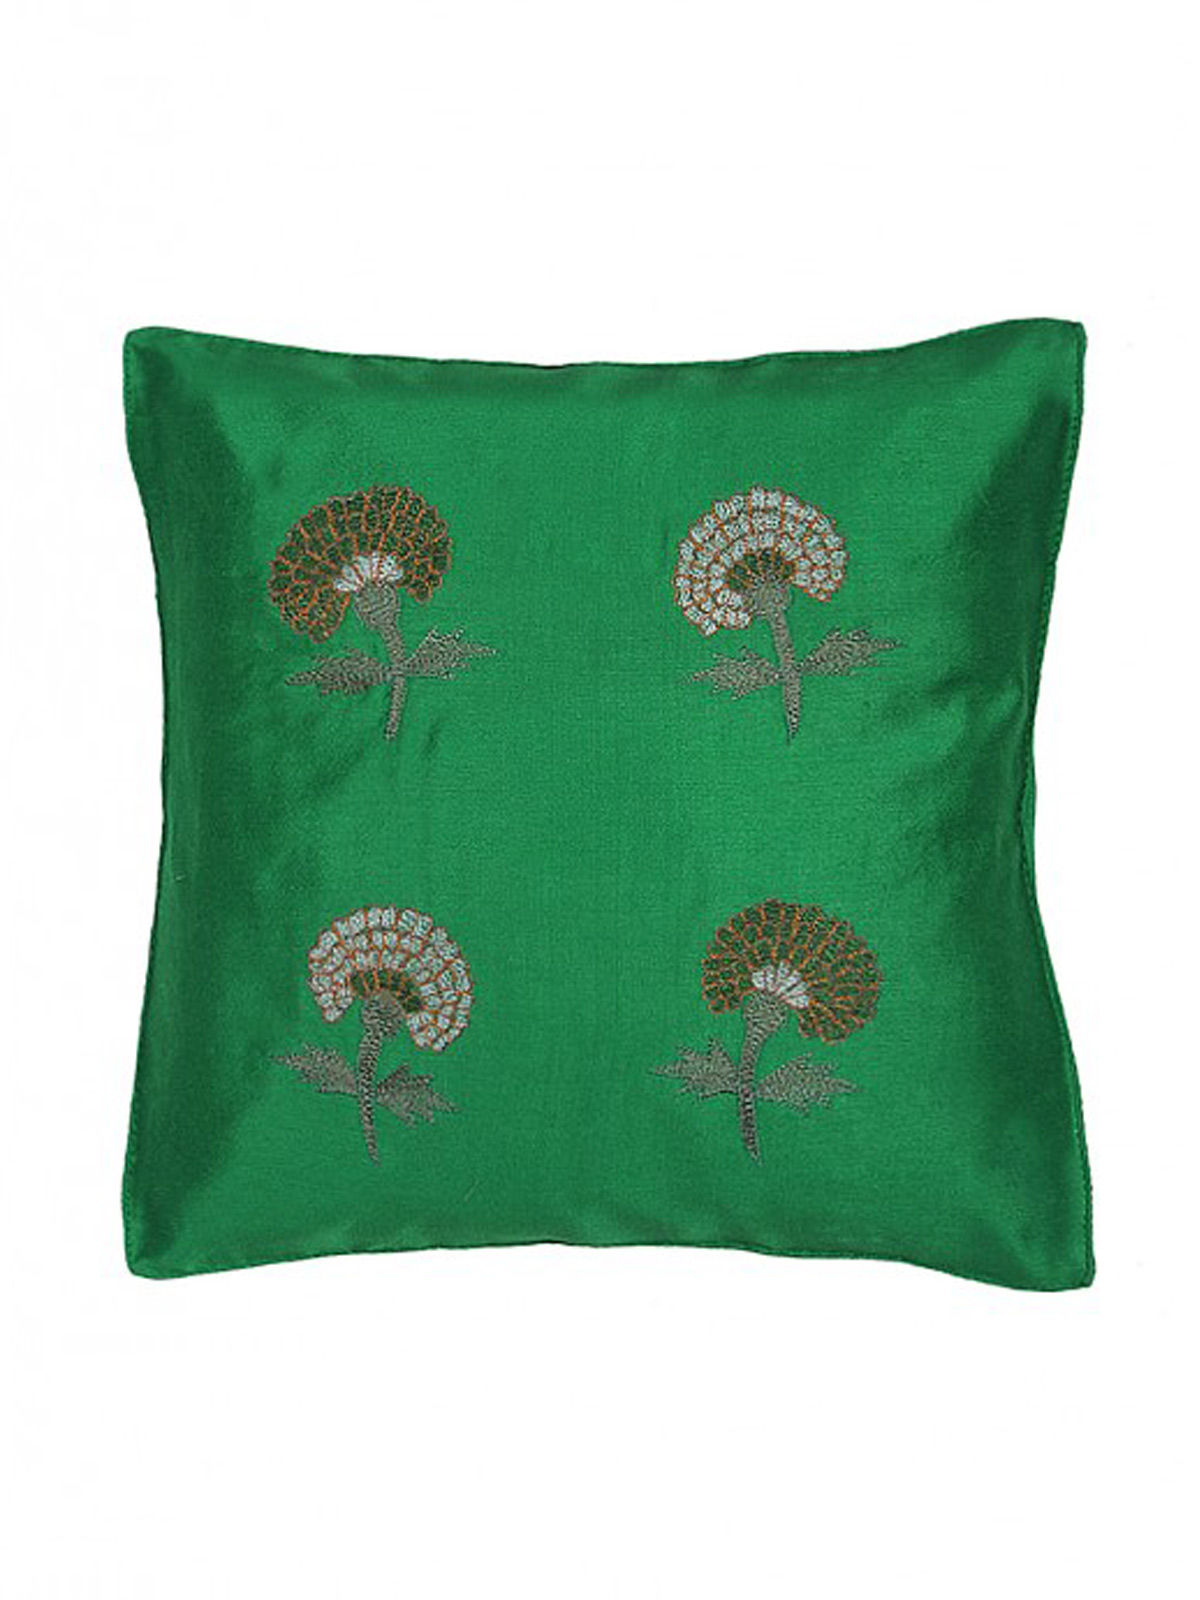 Green-Grey Embroidered Silk Cushion Cover with Marigold Motif